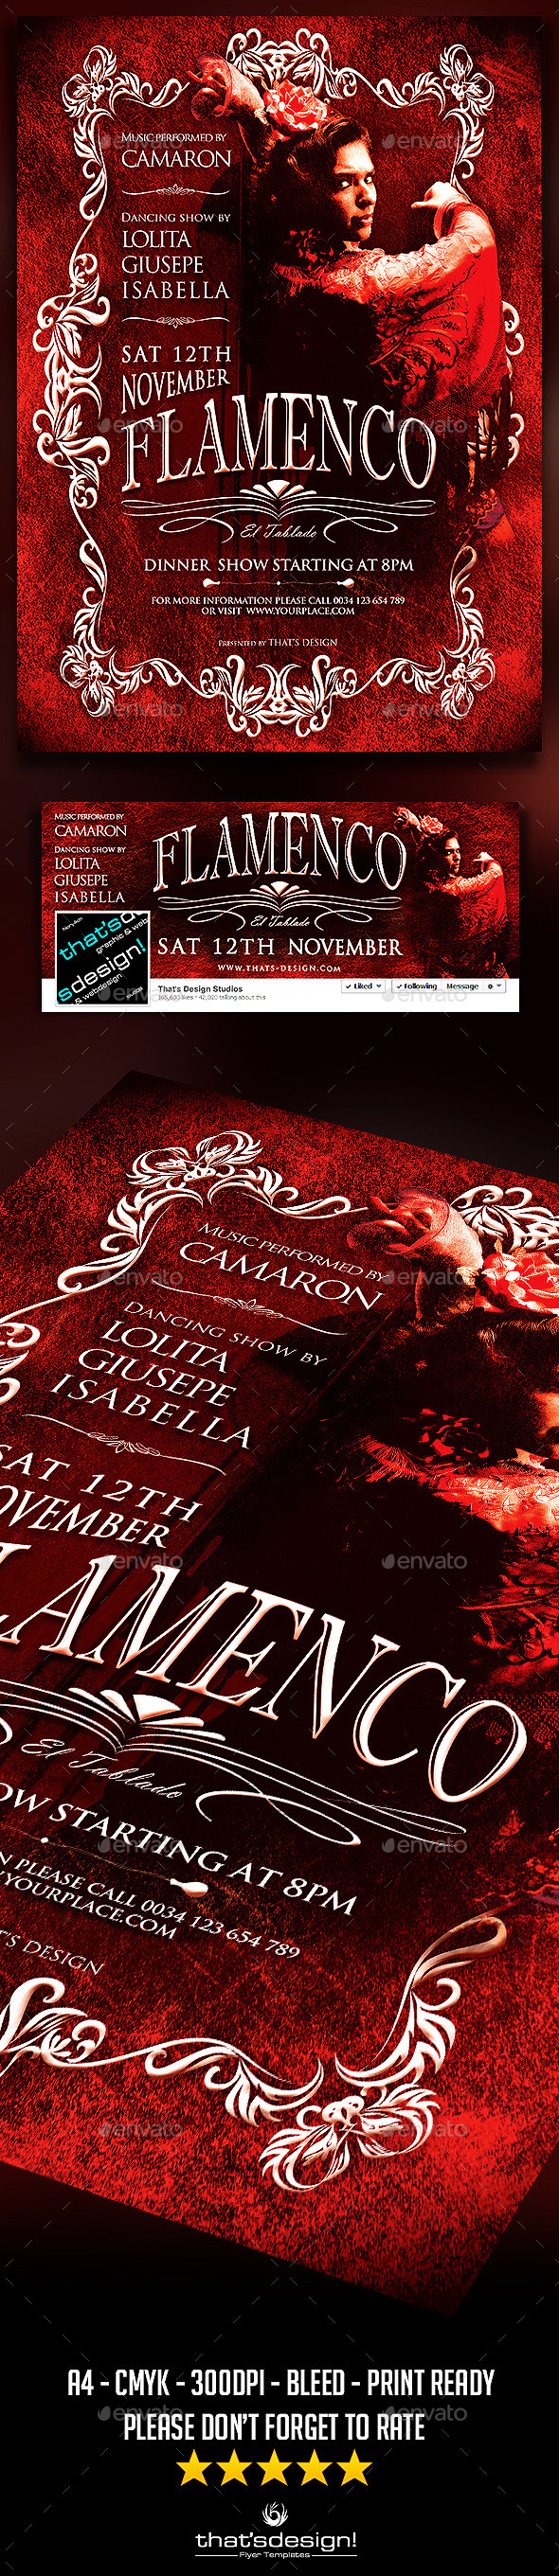 Flamenco Flyer Template V2 - Concerts Events